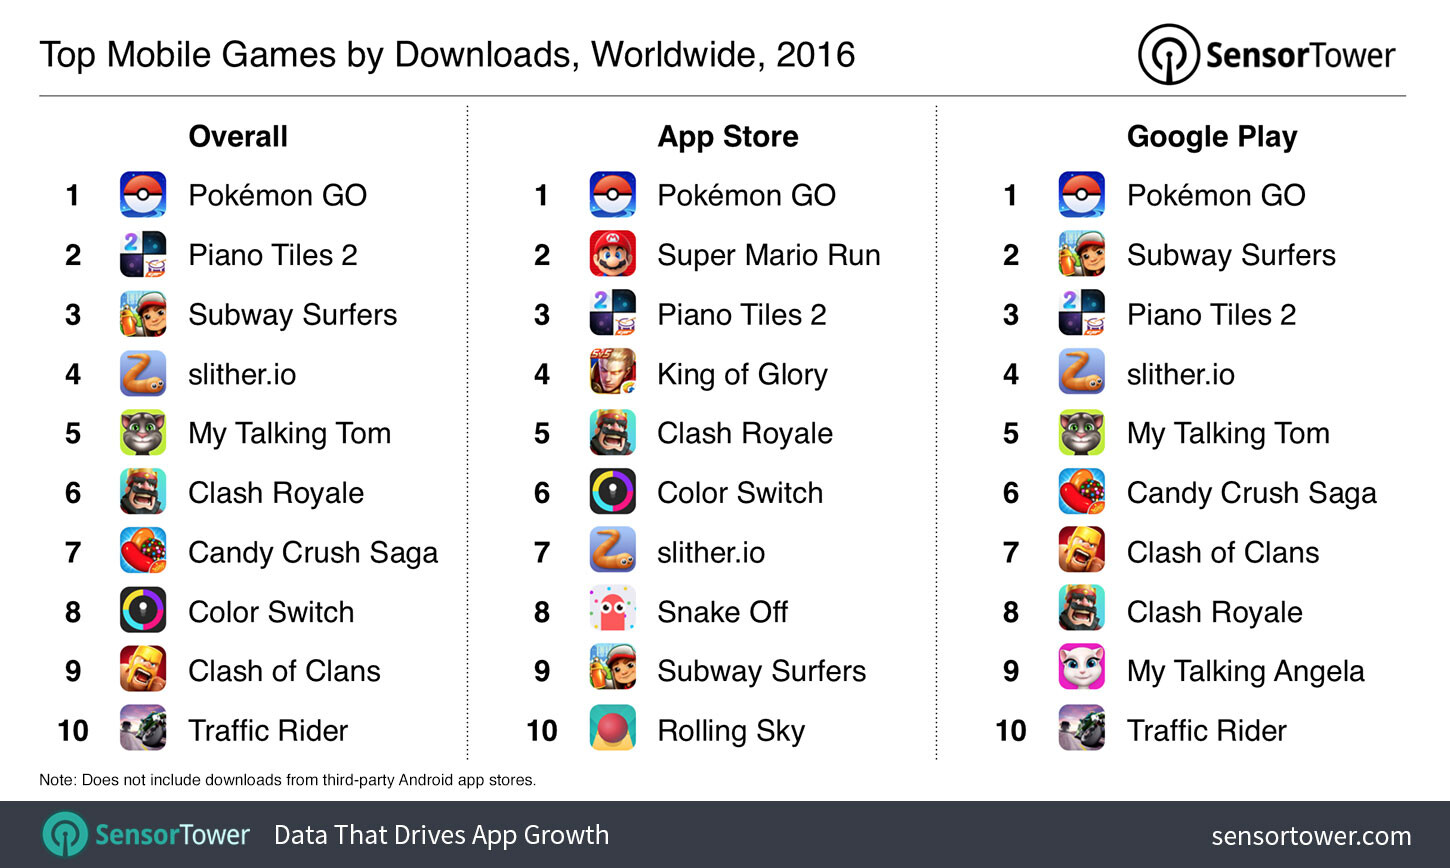 These are the most popular mobile games of 2016